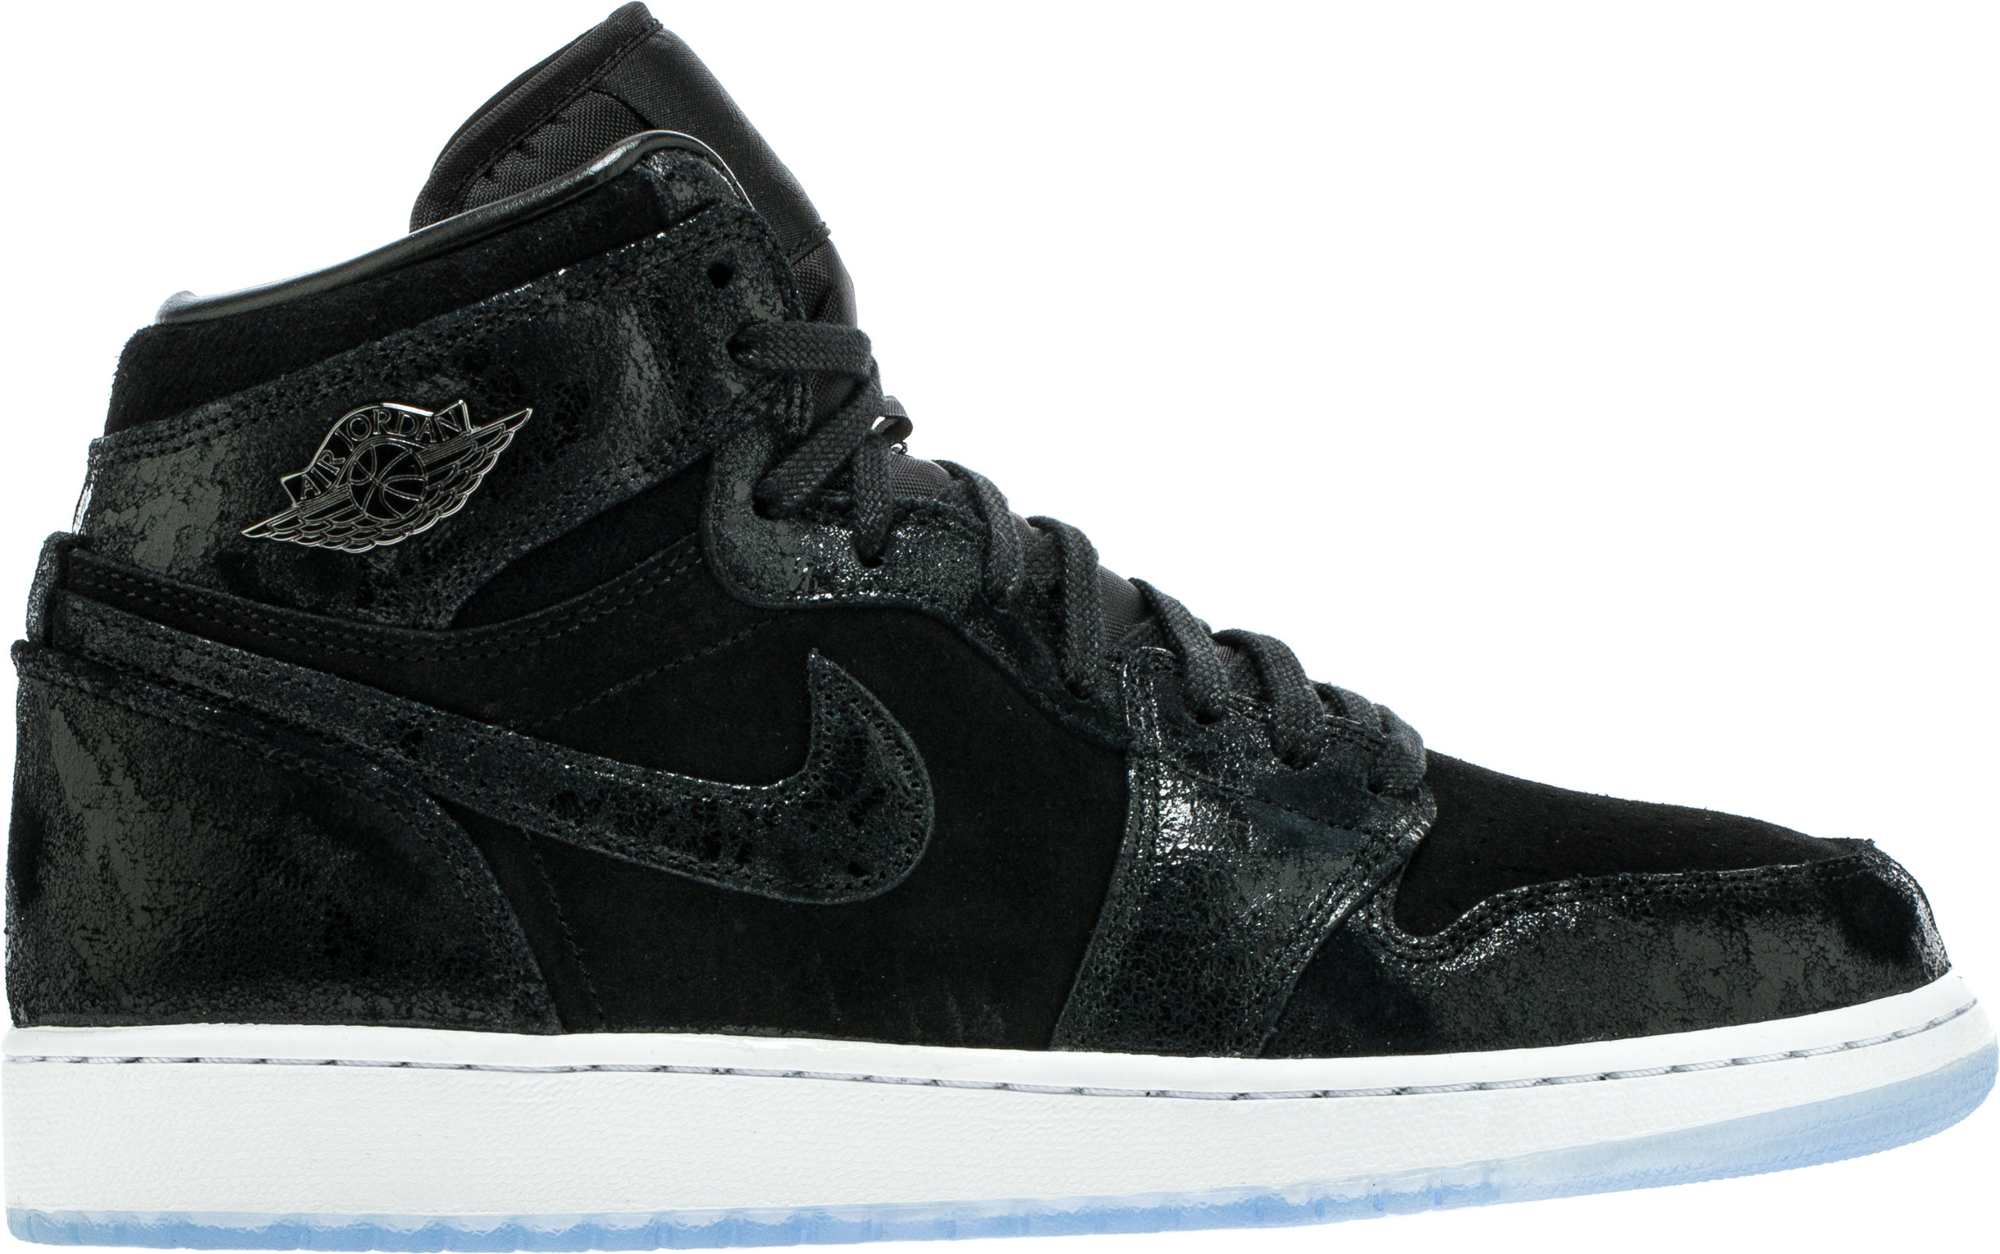 Jordan 1 Retro High Heiress Black Suede (GS)